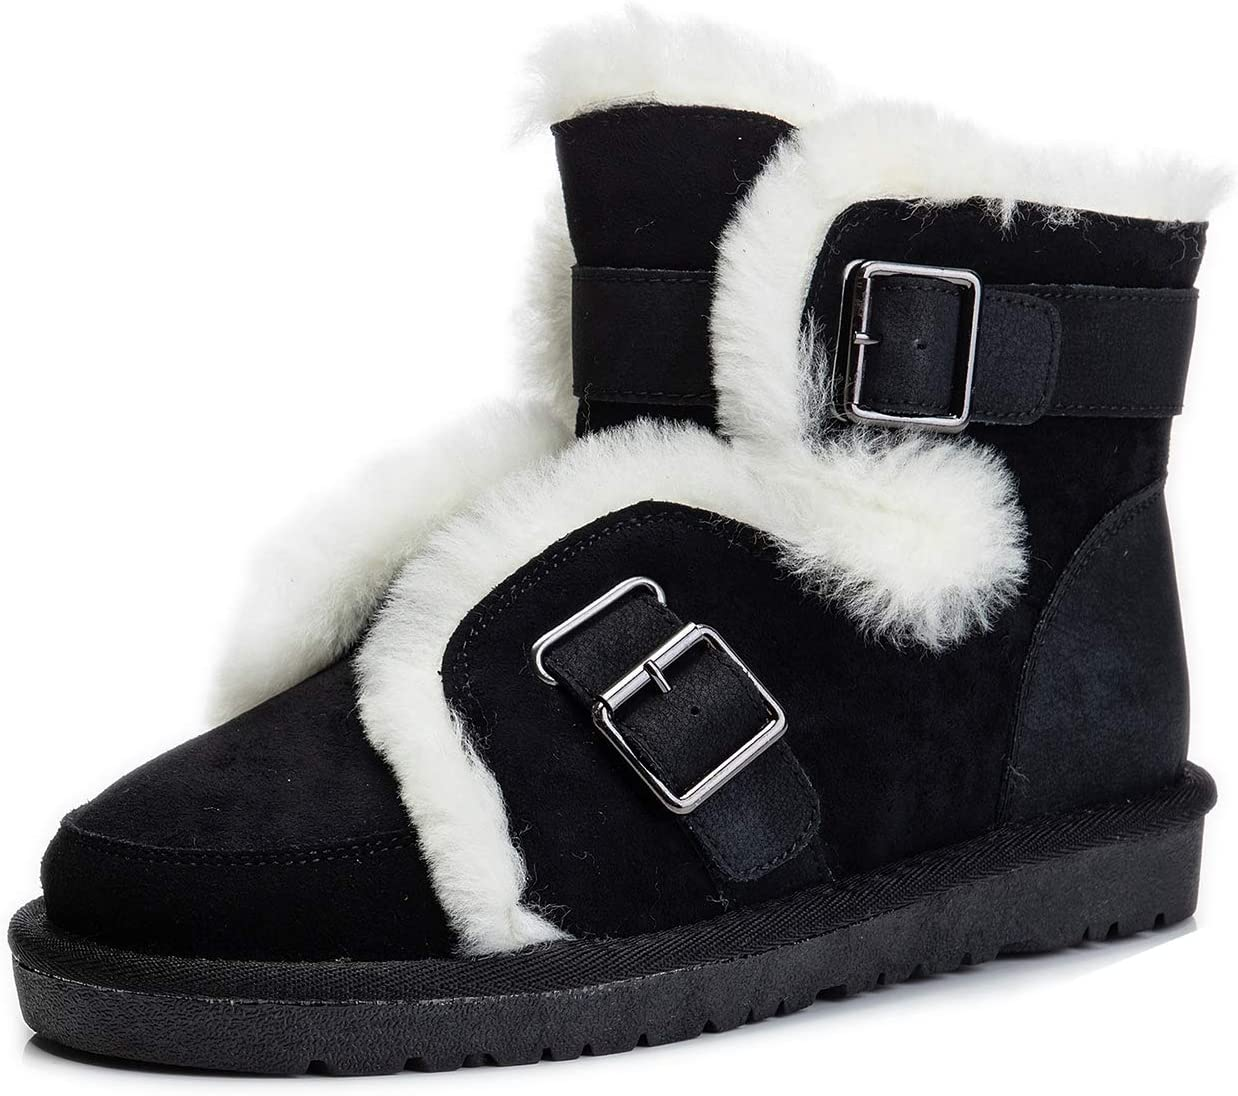 Womens Wool Snow Boots Fashion Short Boston Mall Plus Warm Be super welcome Winter Vel